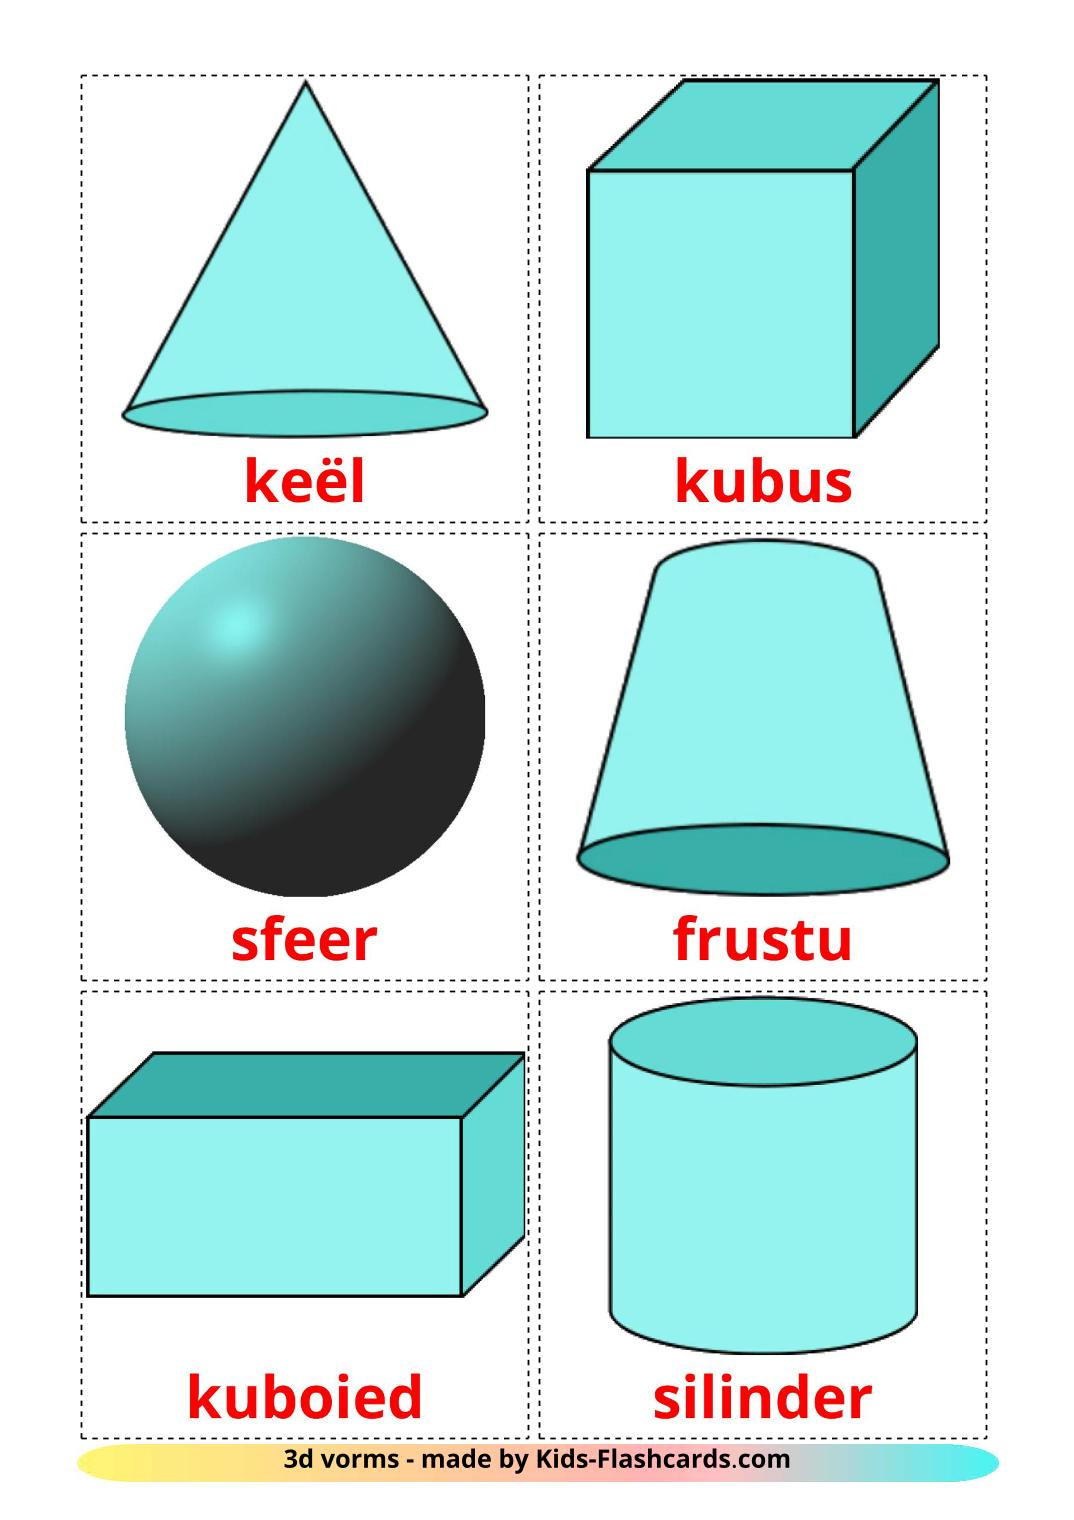 3D Shapes - 17 Free Printable afrikaans Flashcards